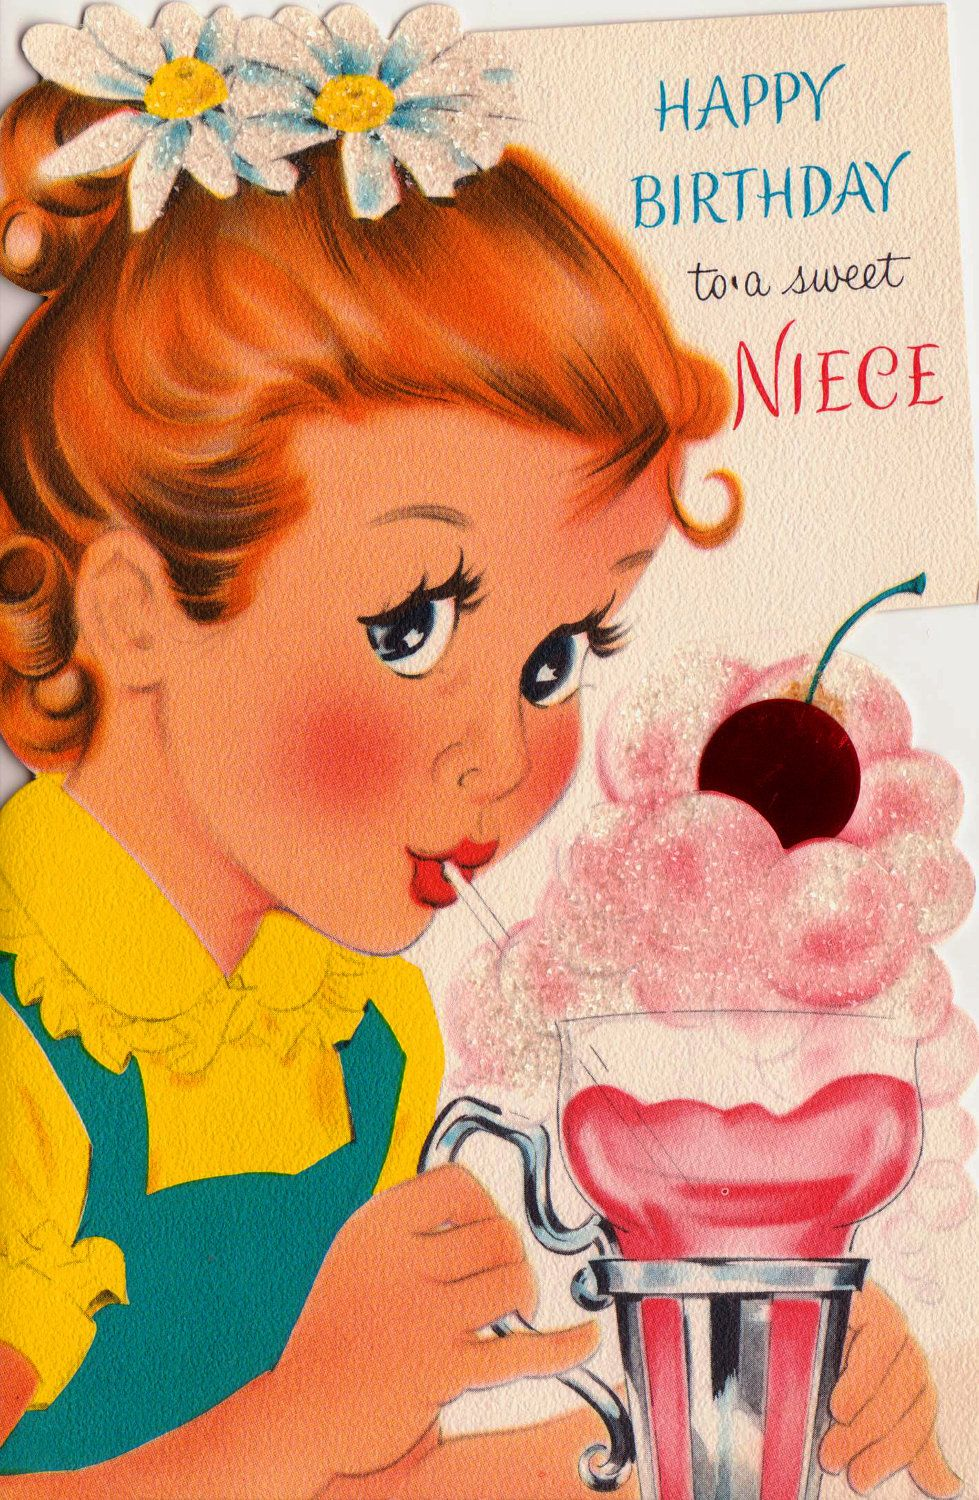 1950s vintage happy birthday to a sweet niece greetings